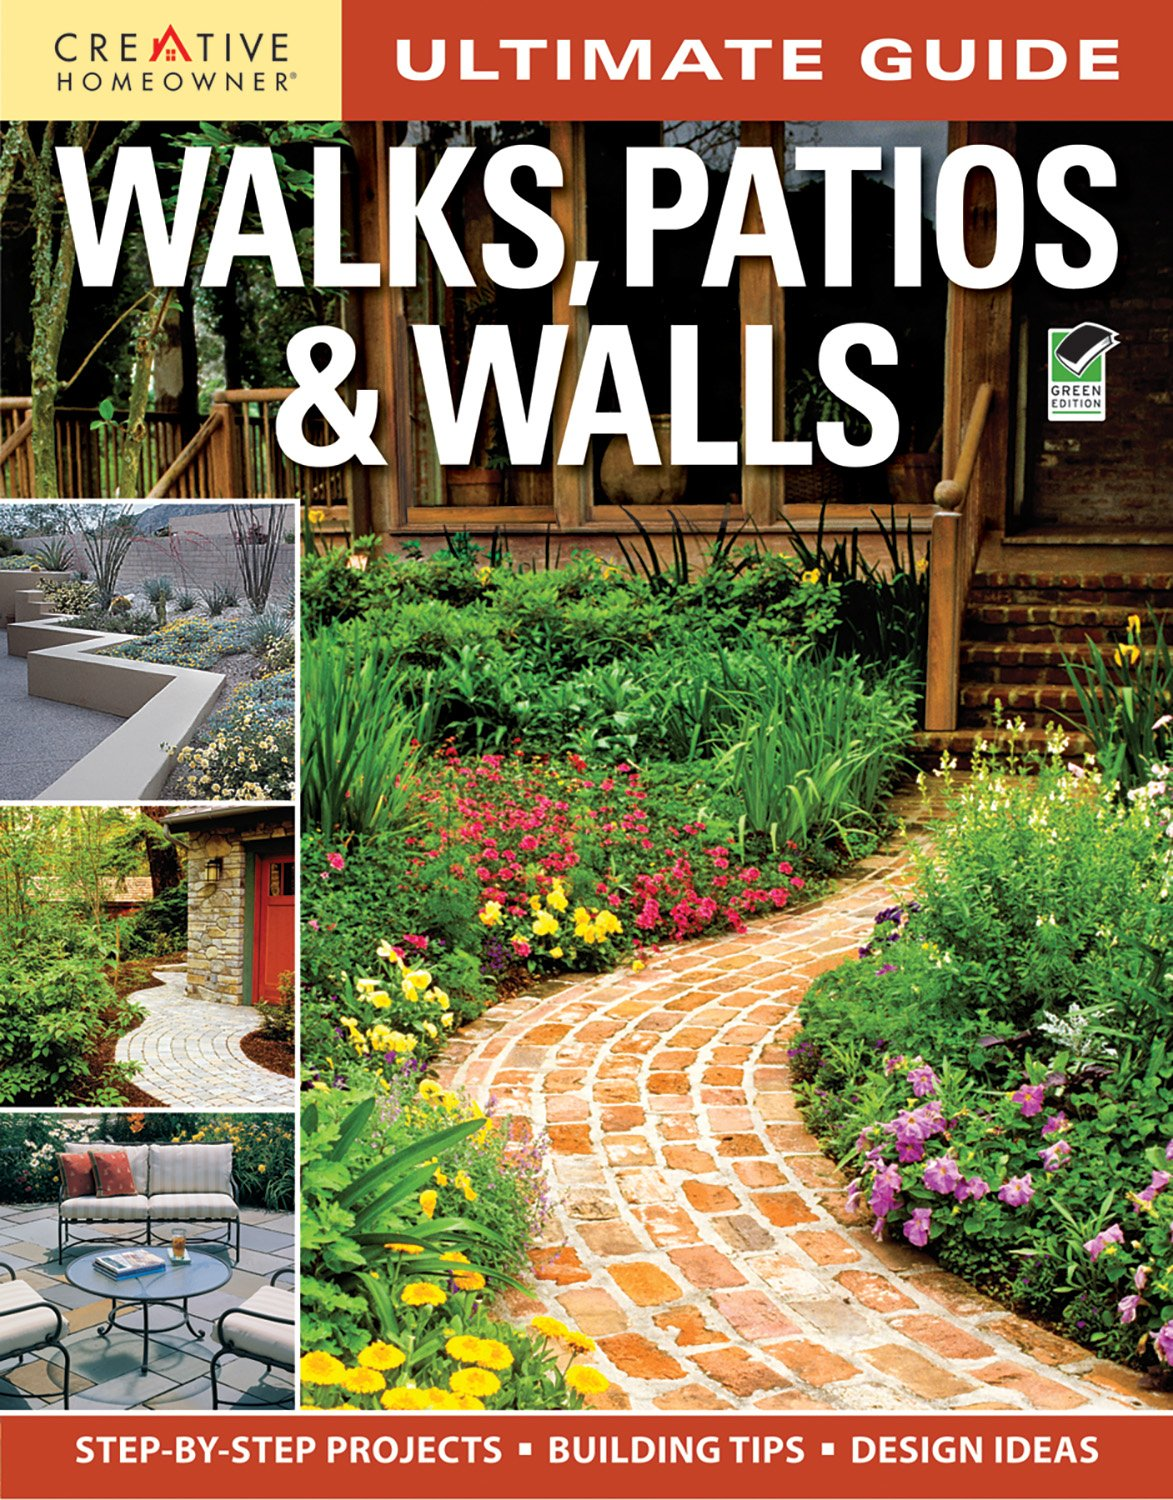 Ultimate Guide Walks Patios Landscaping product image